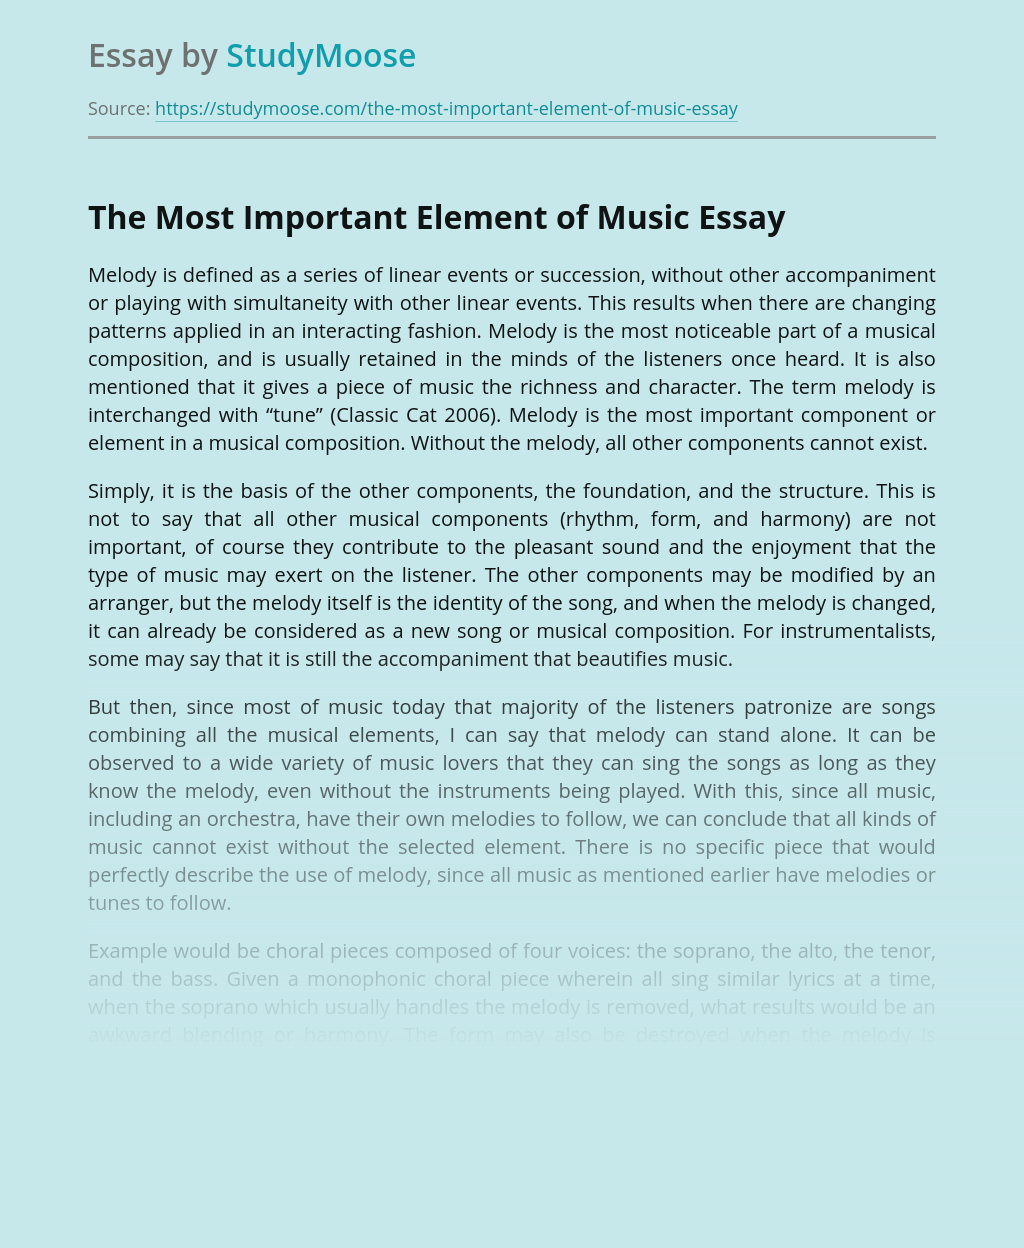 The Most Important Element of Music